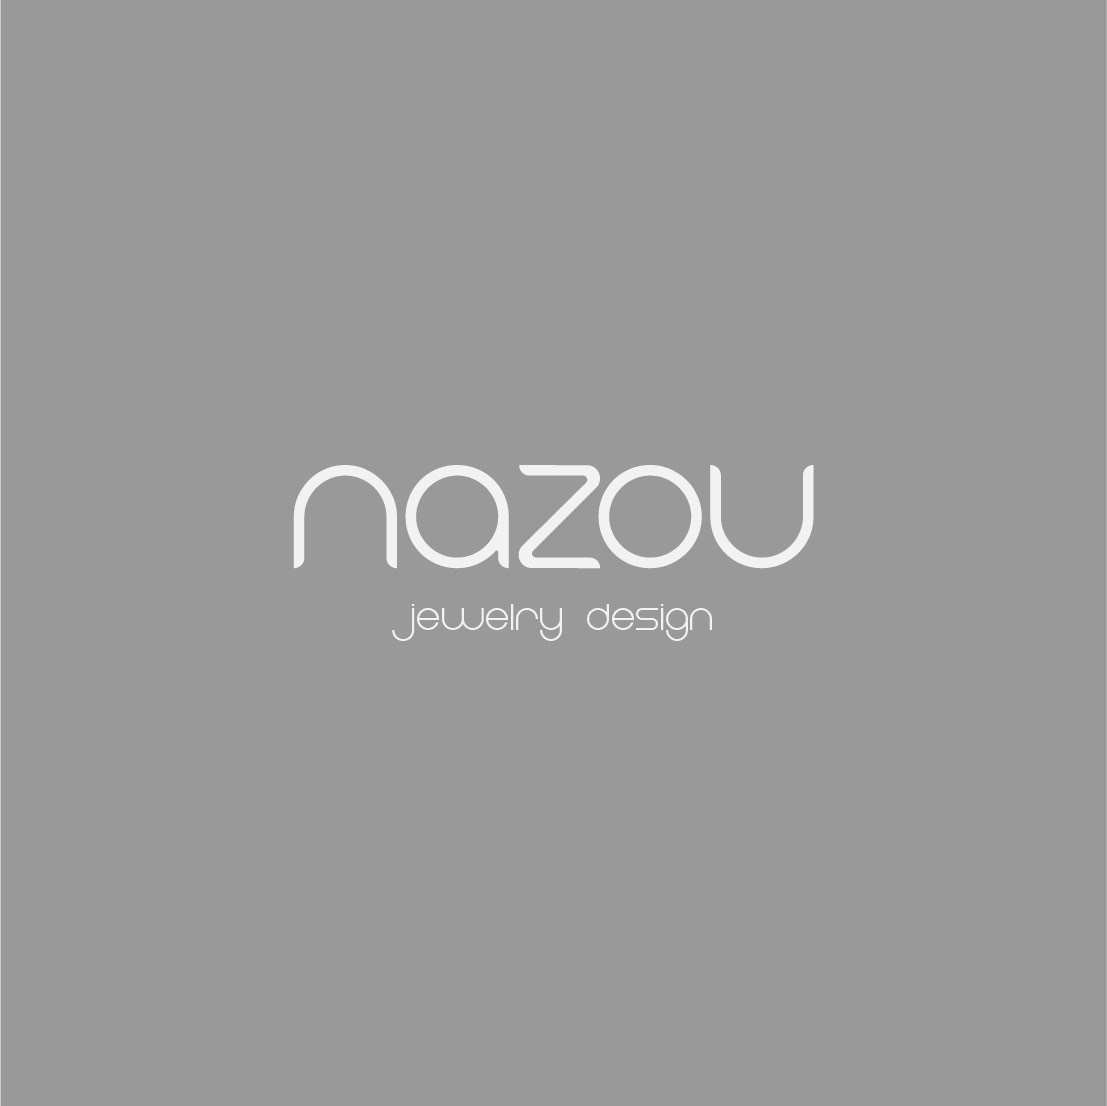 Nazou Jewelry Design